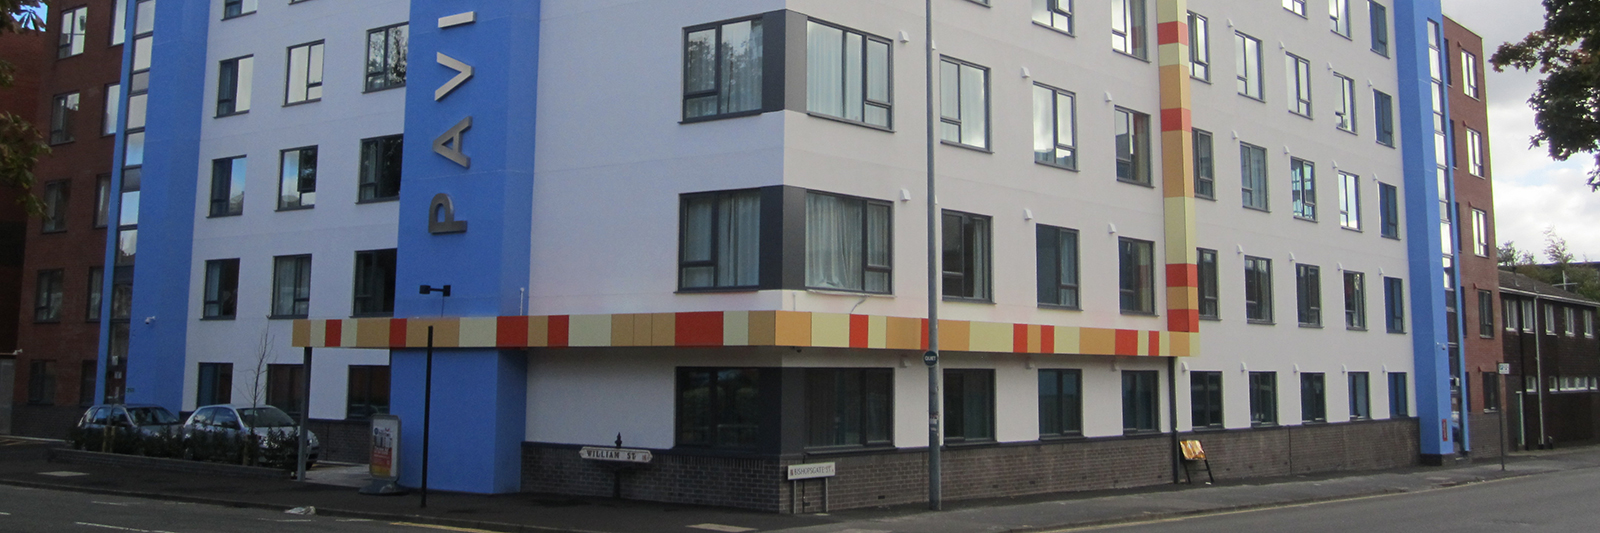 The Pavilion student accommodation